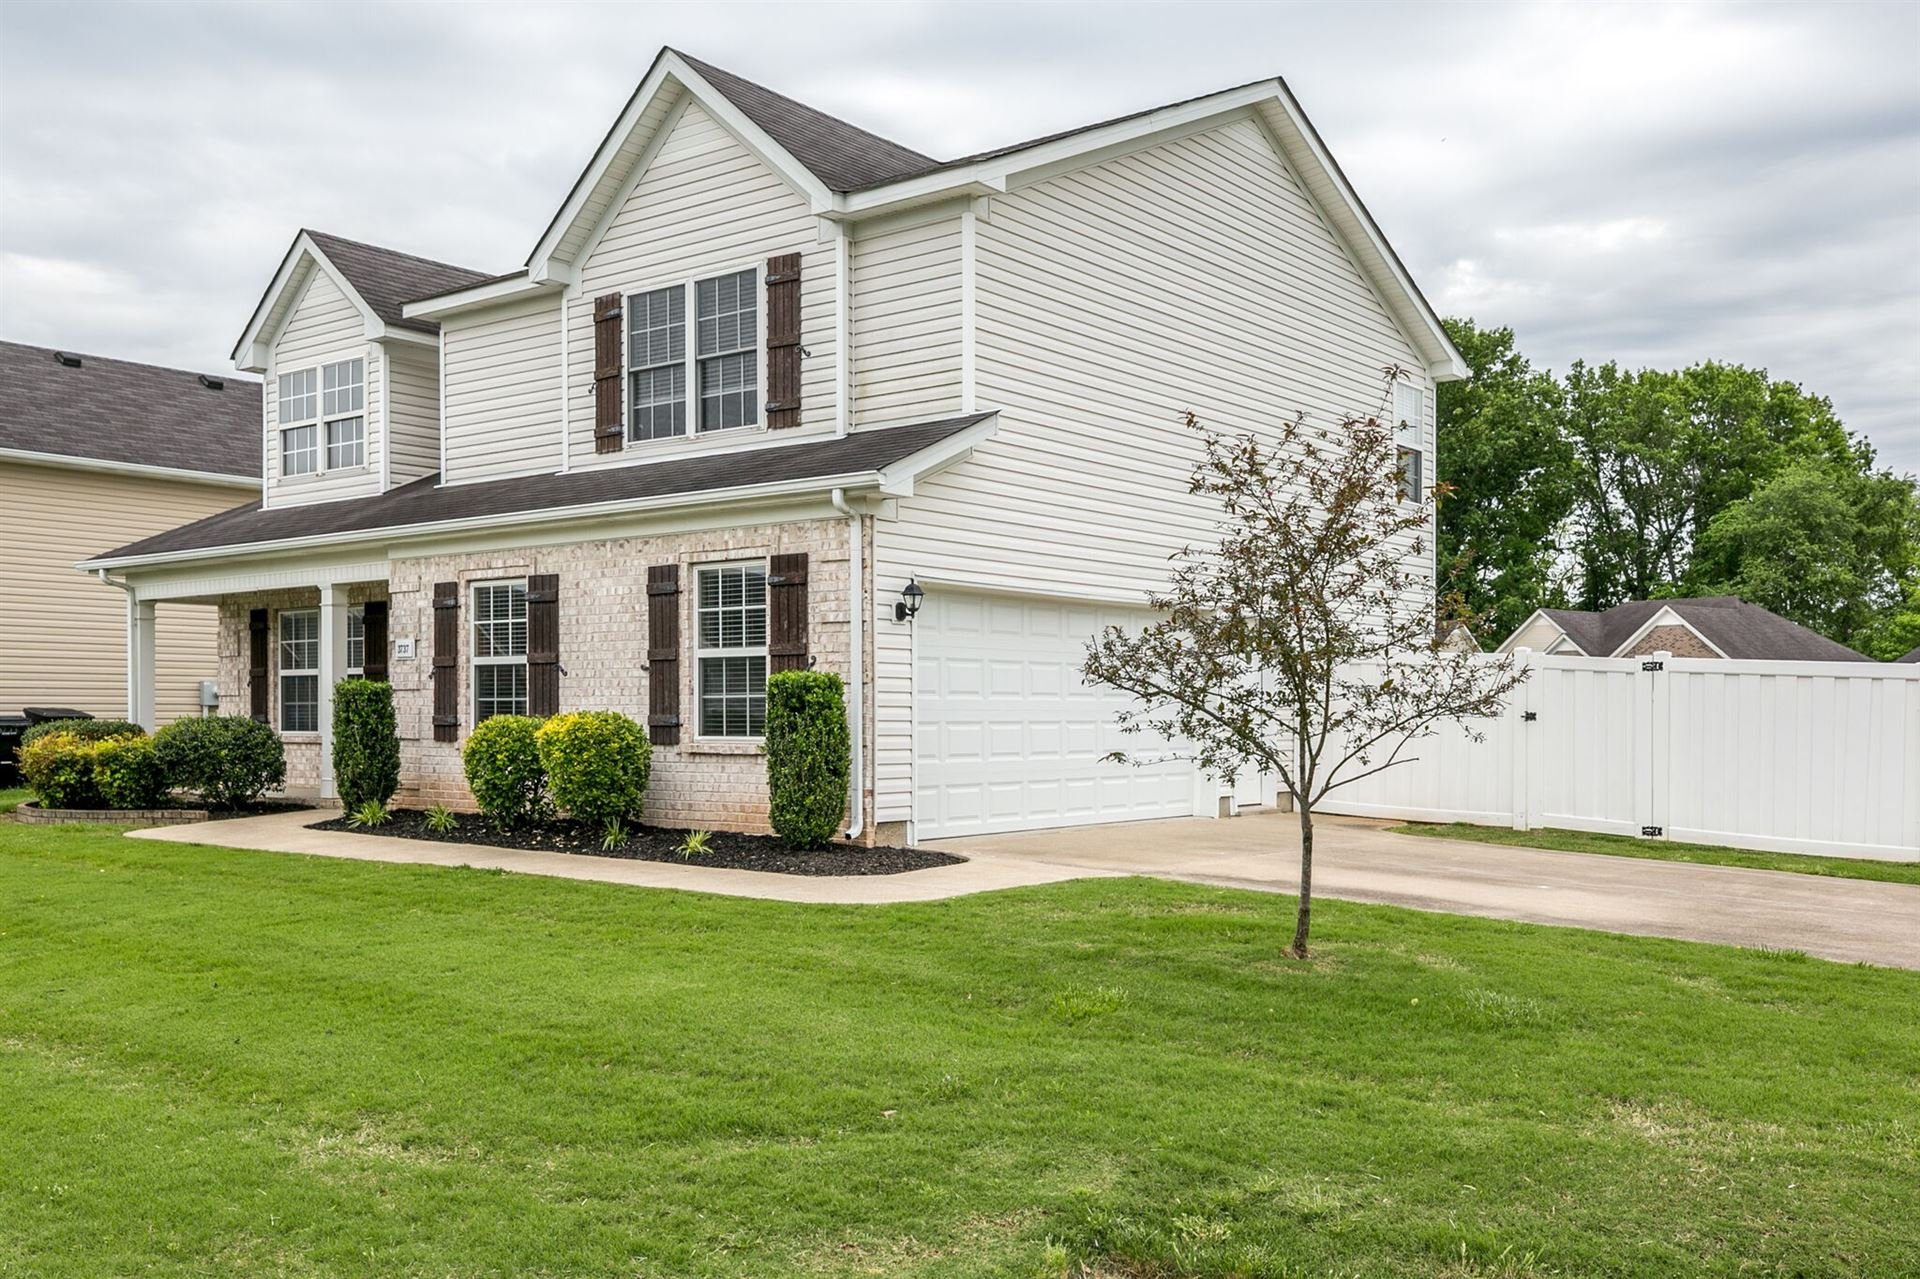 Photo of 3737 Shoteka Dr, Murfreesboro, TN 37128 (MLS # 2252140)